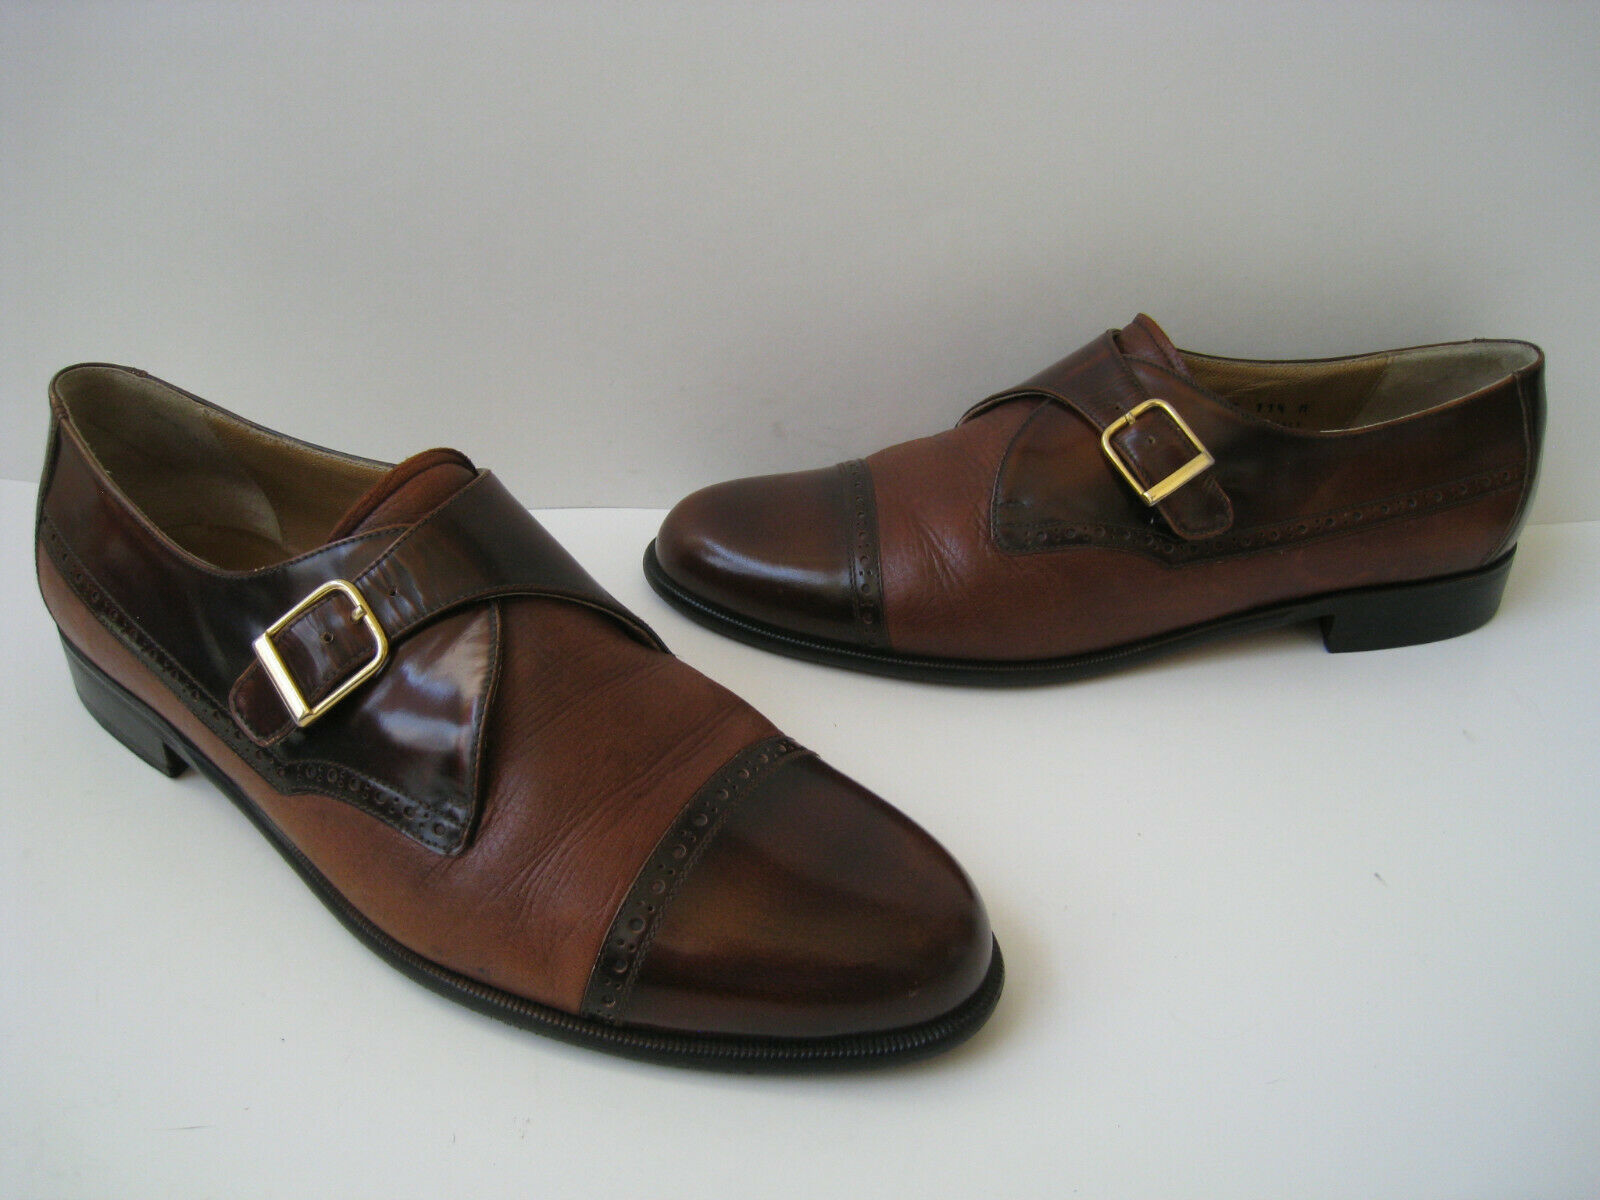 STAMATI MASTROIANNI MONK STRAP COGNAC LEATHER LOAFERS SIZE US 11.5 MADE IN ITALY